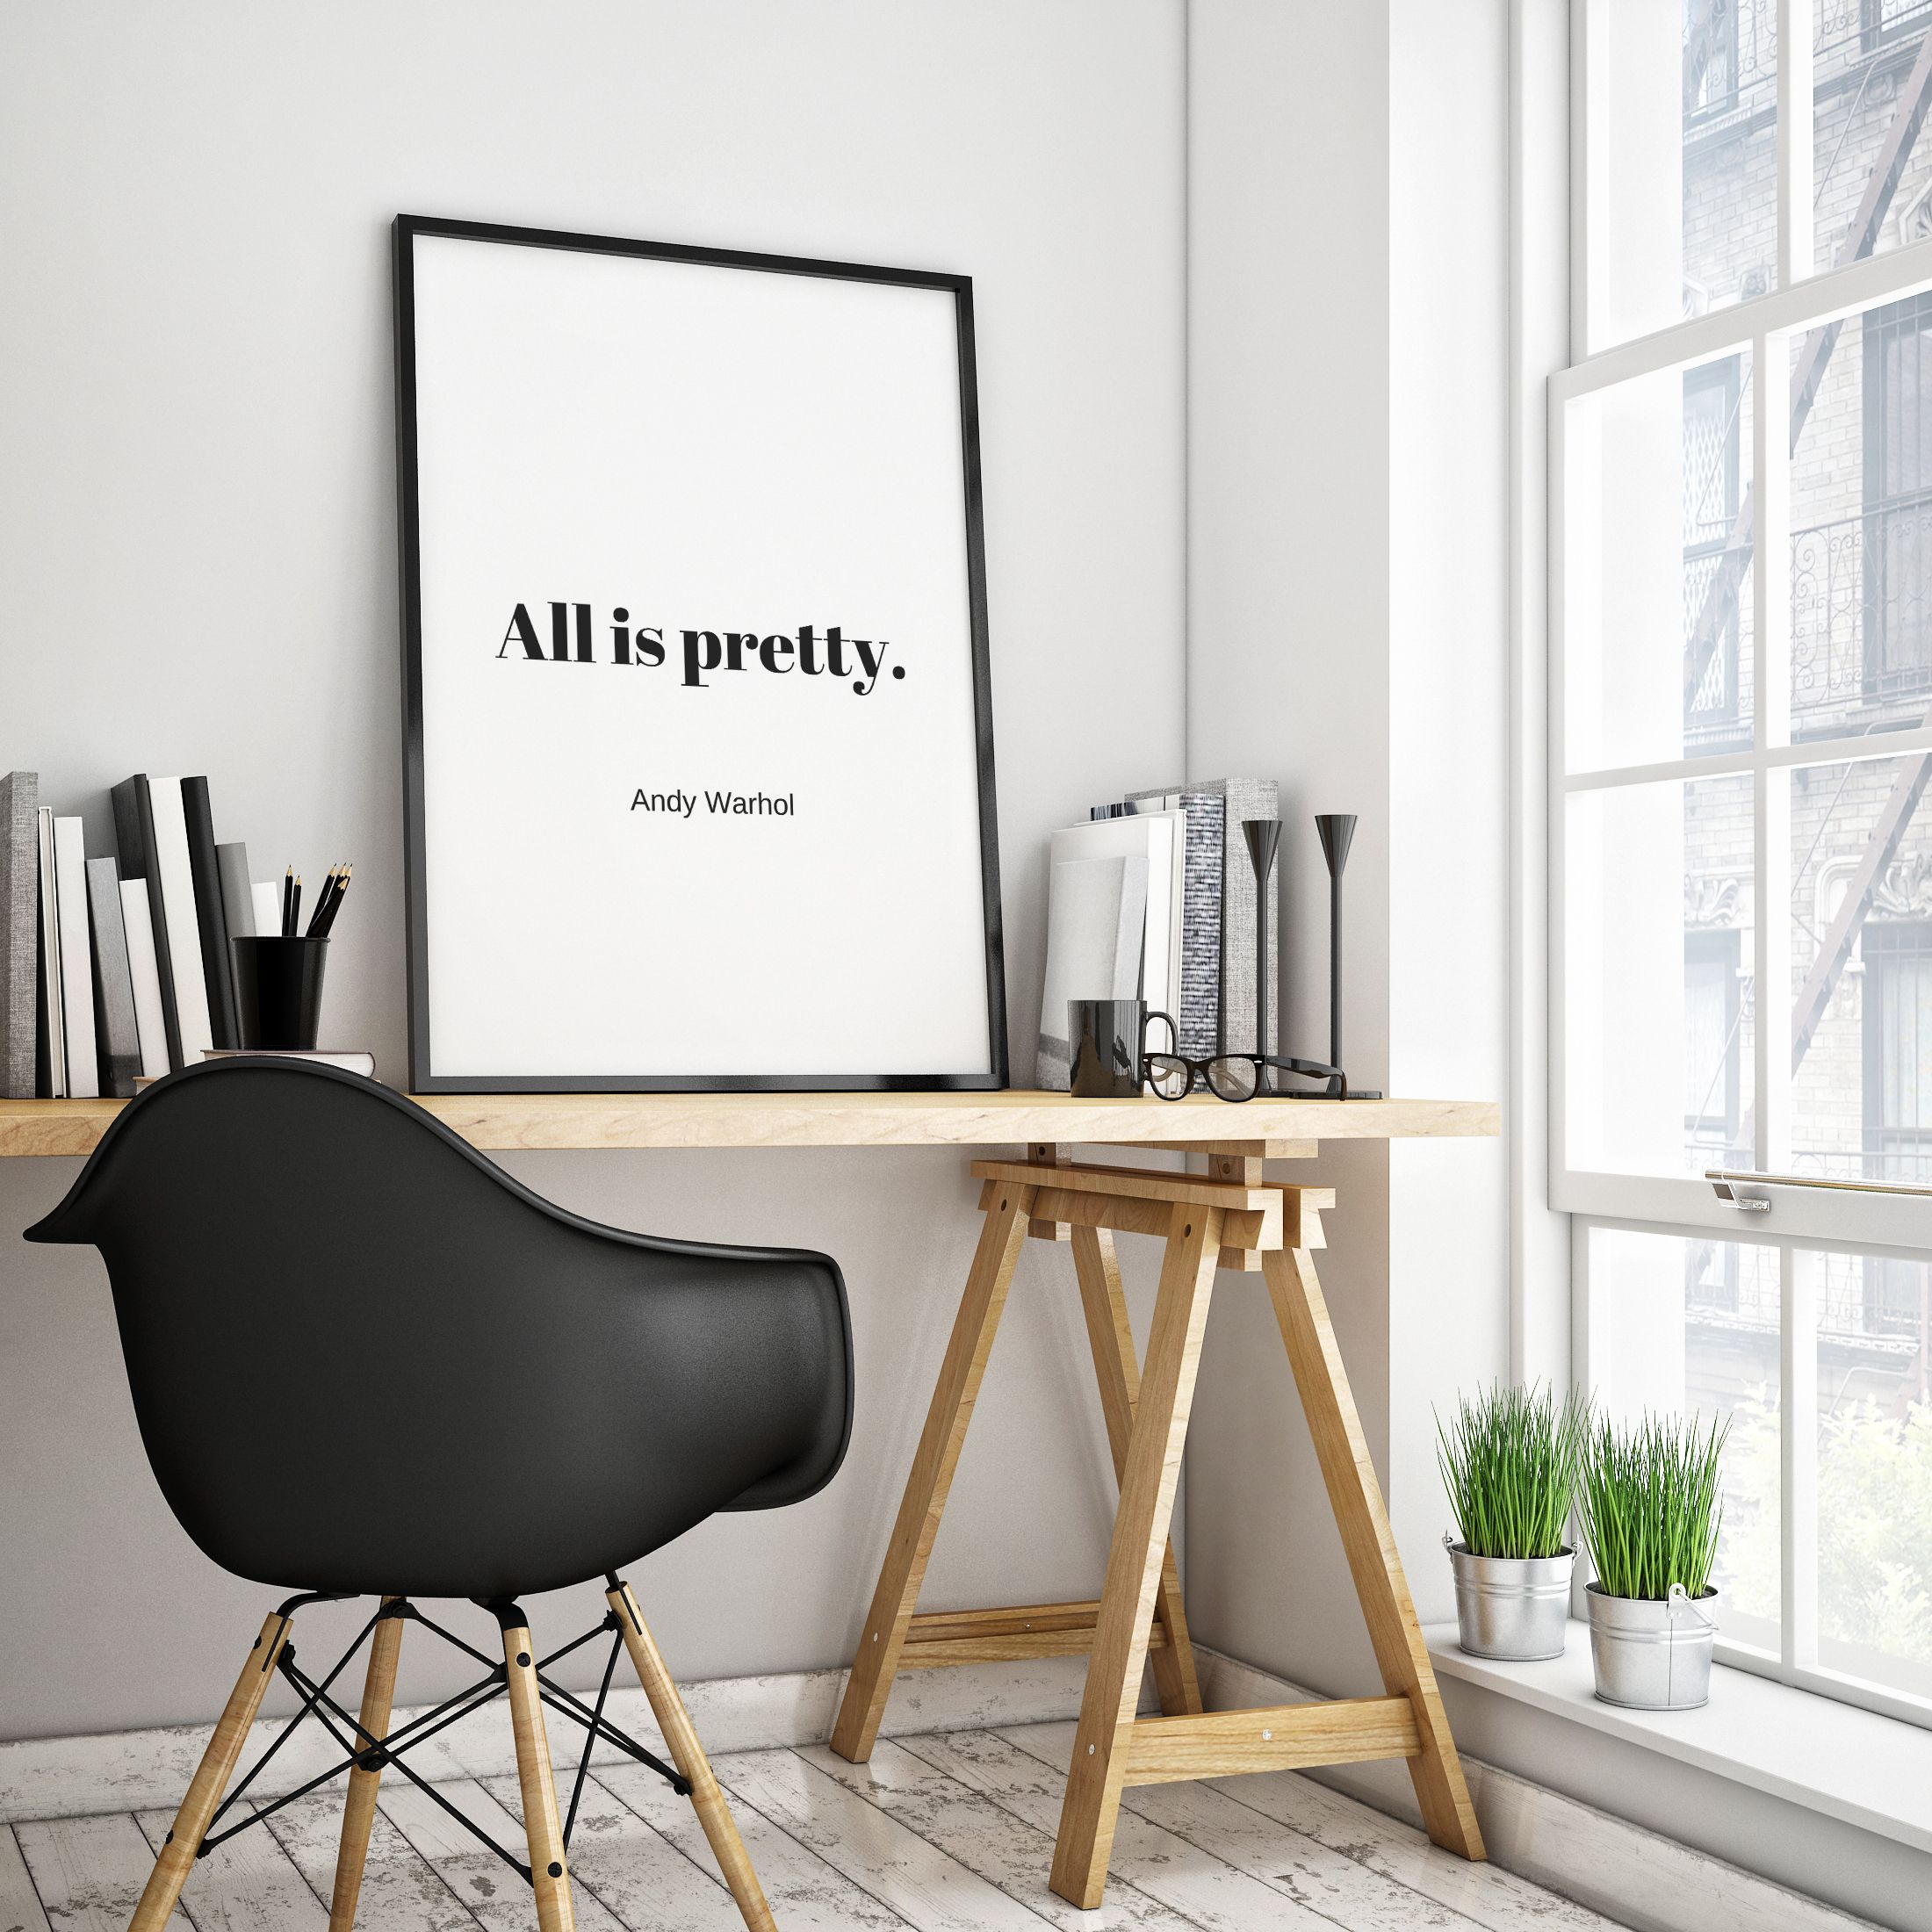 All is pretty Andy Warhol Minimal quote print